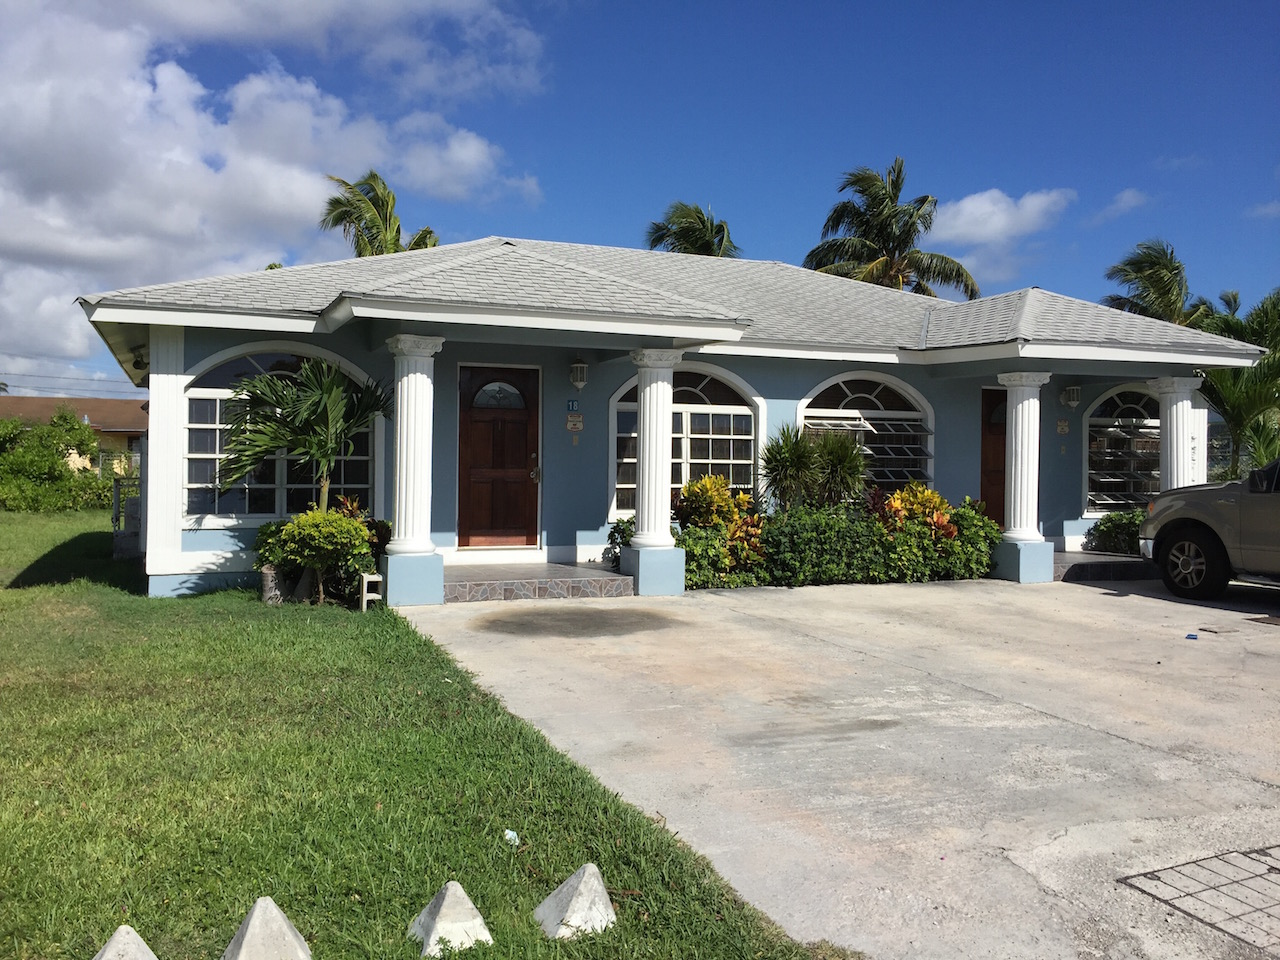 Multi Family for Sale at Colony Village Duplex - MLS 31669 Nassau And Paradise Island, Bahamas